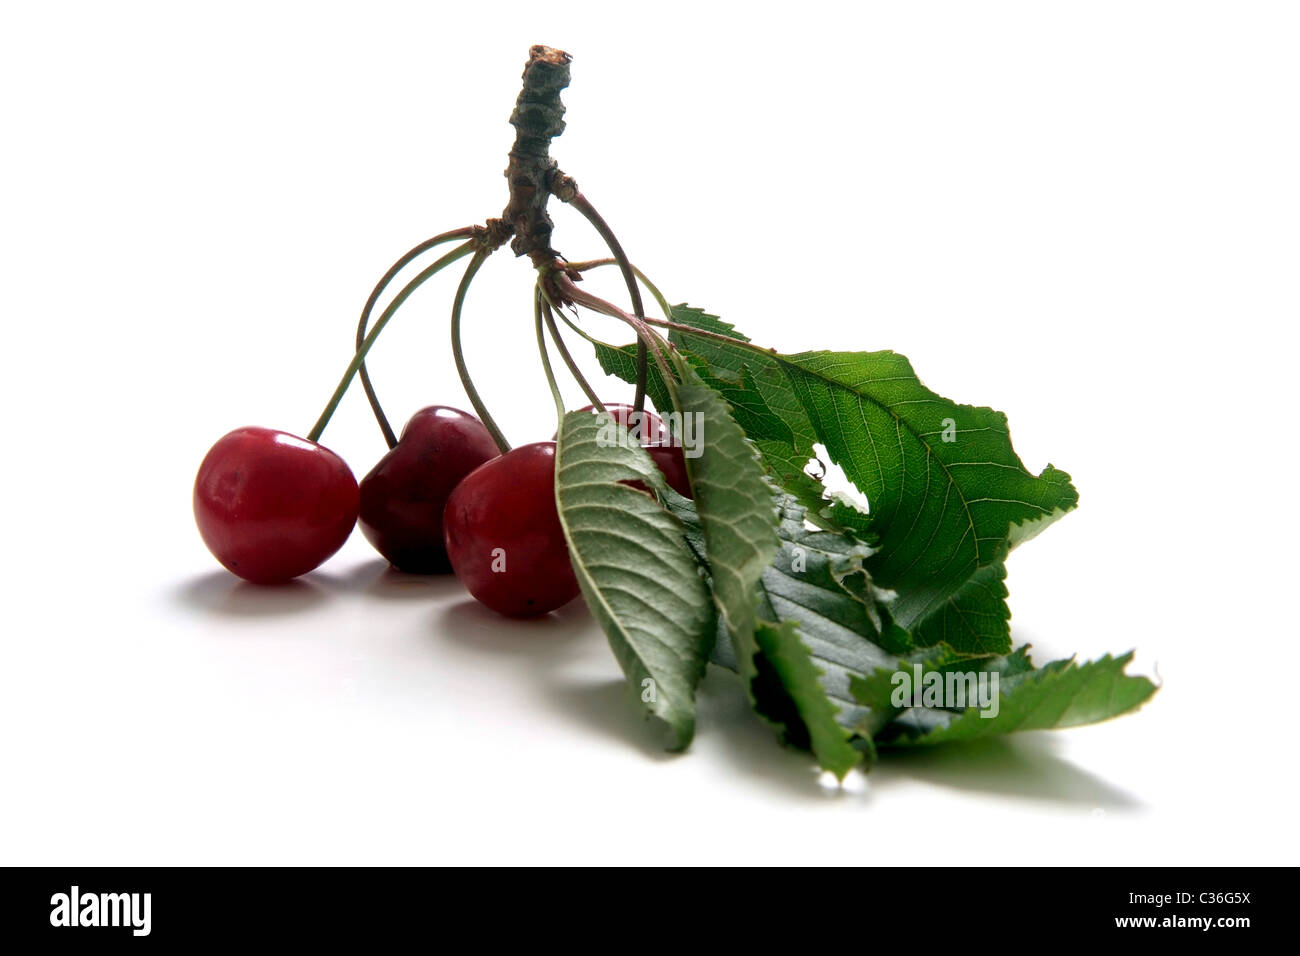 Cherry variety Braunauer  with twig and leaves - Stock Image